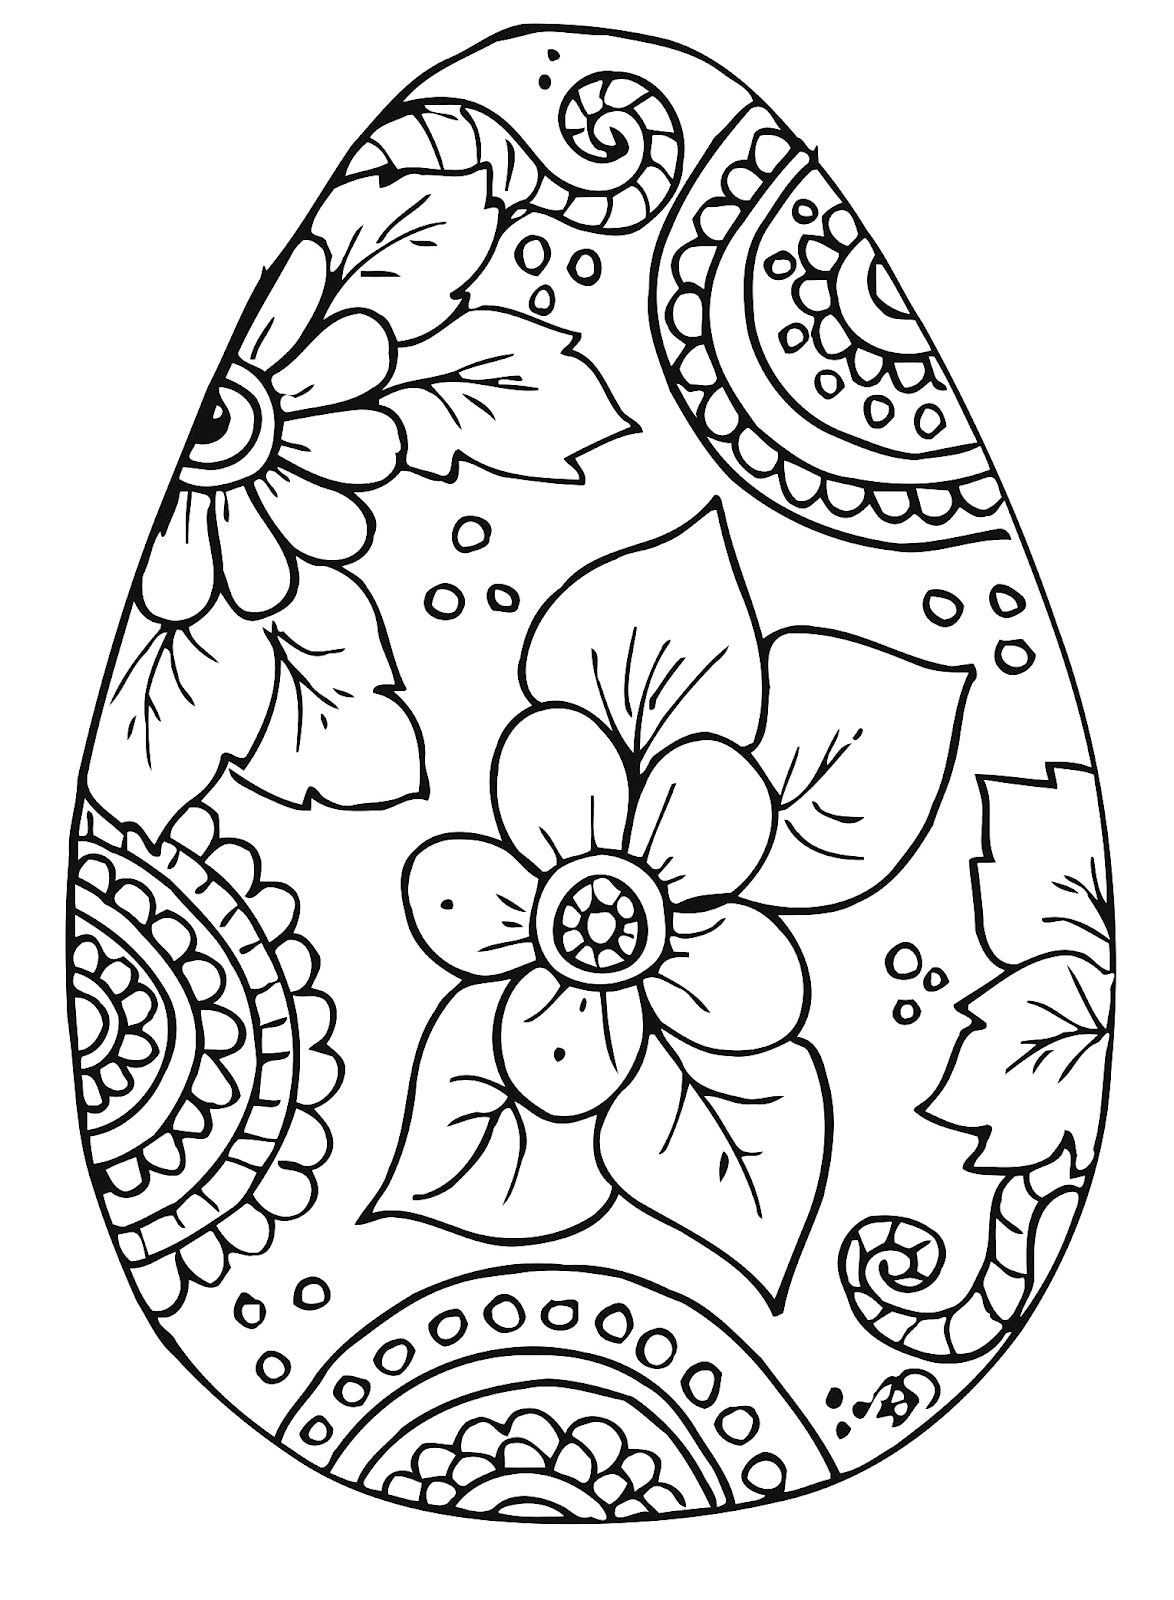 Easter Coloring 10 Cool Free Printable Easter Coloring Pages for Gallery Of Bunny Egg by Rustchic Bucket Printable